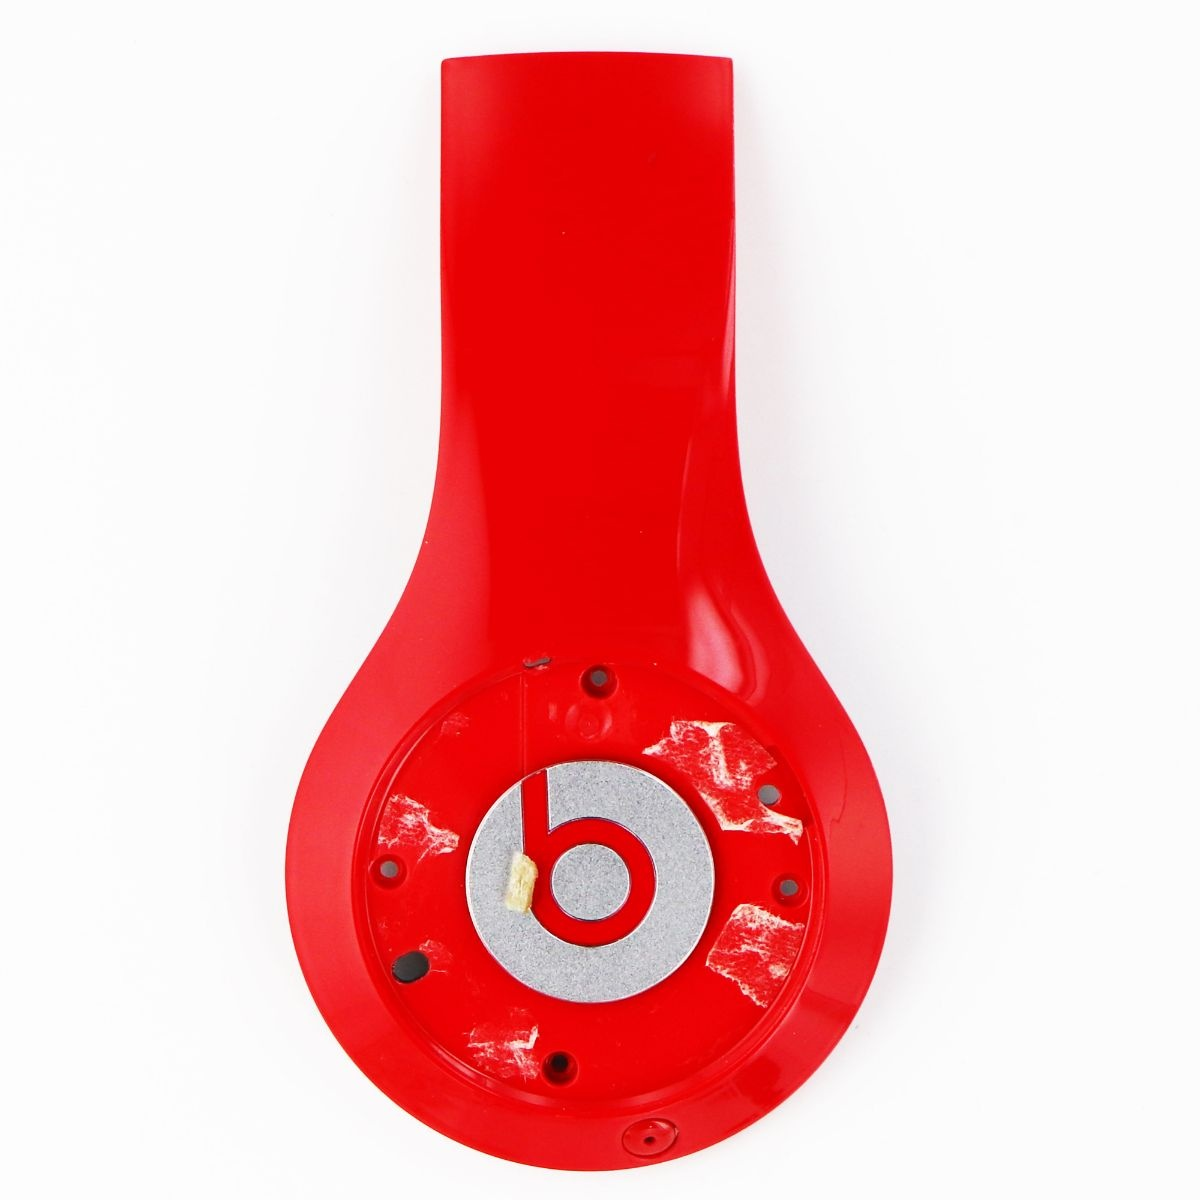 OEM Repair Part – Right Outer Housing Take Off From Beats Studio - RED